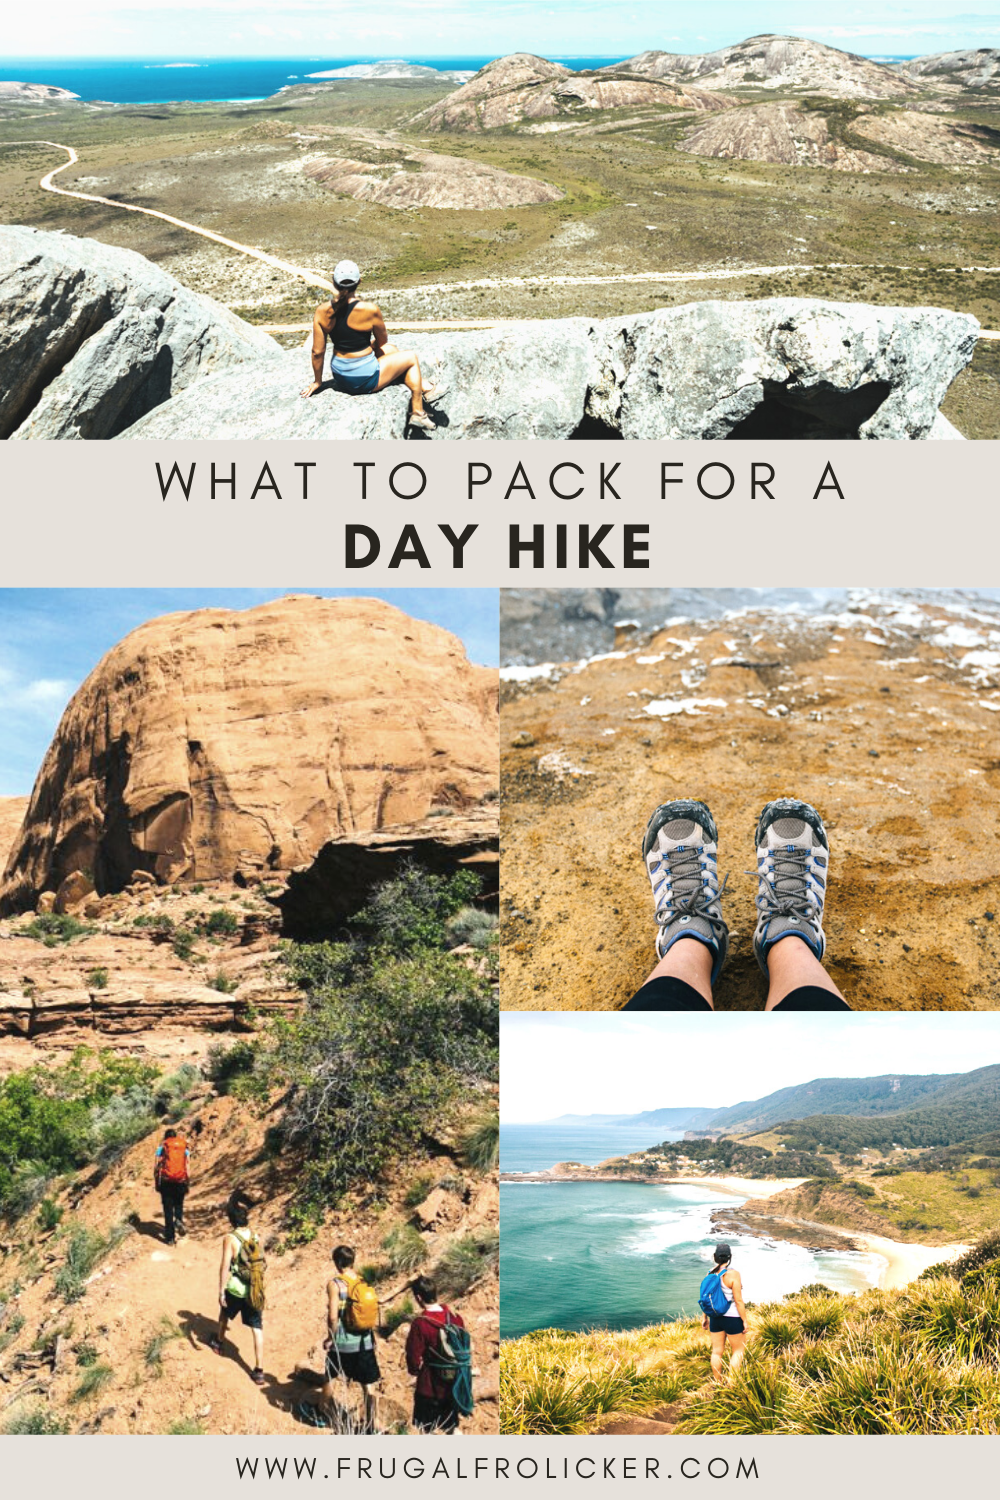 Packing For A Day Hike | Your Day Hike Packing List